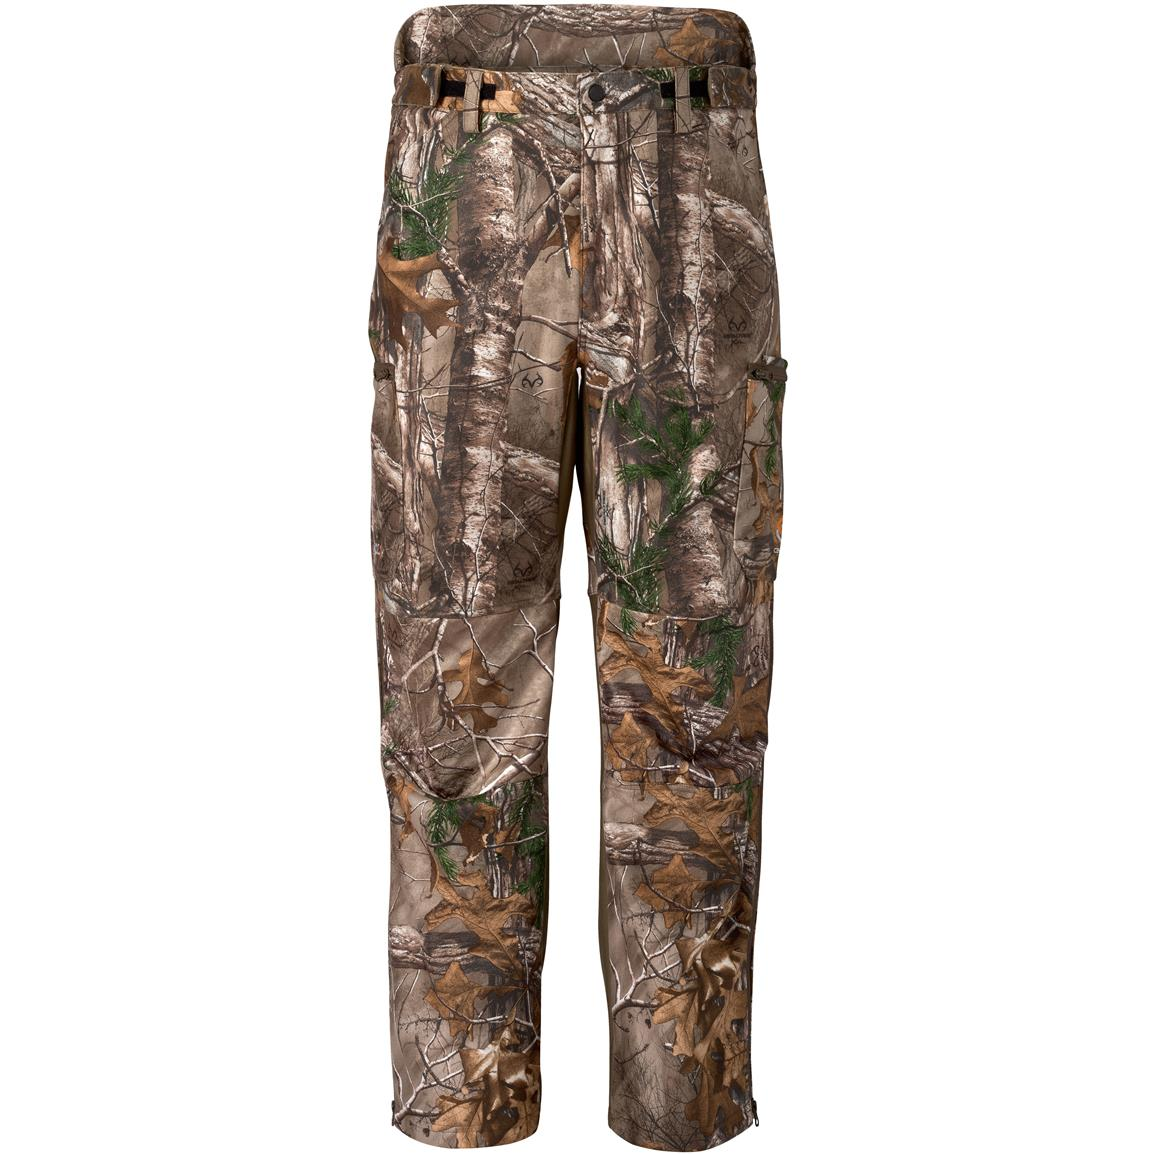 Scentlok Men's Recon Thermal Hunting Pants, Realtree Xtra